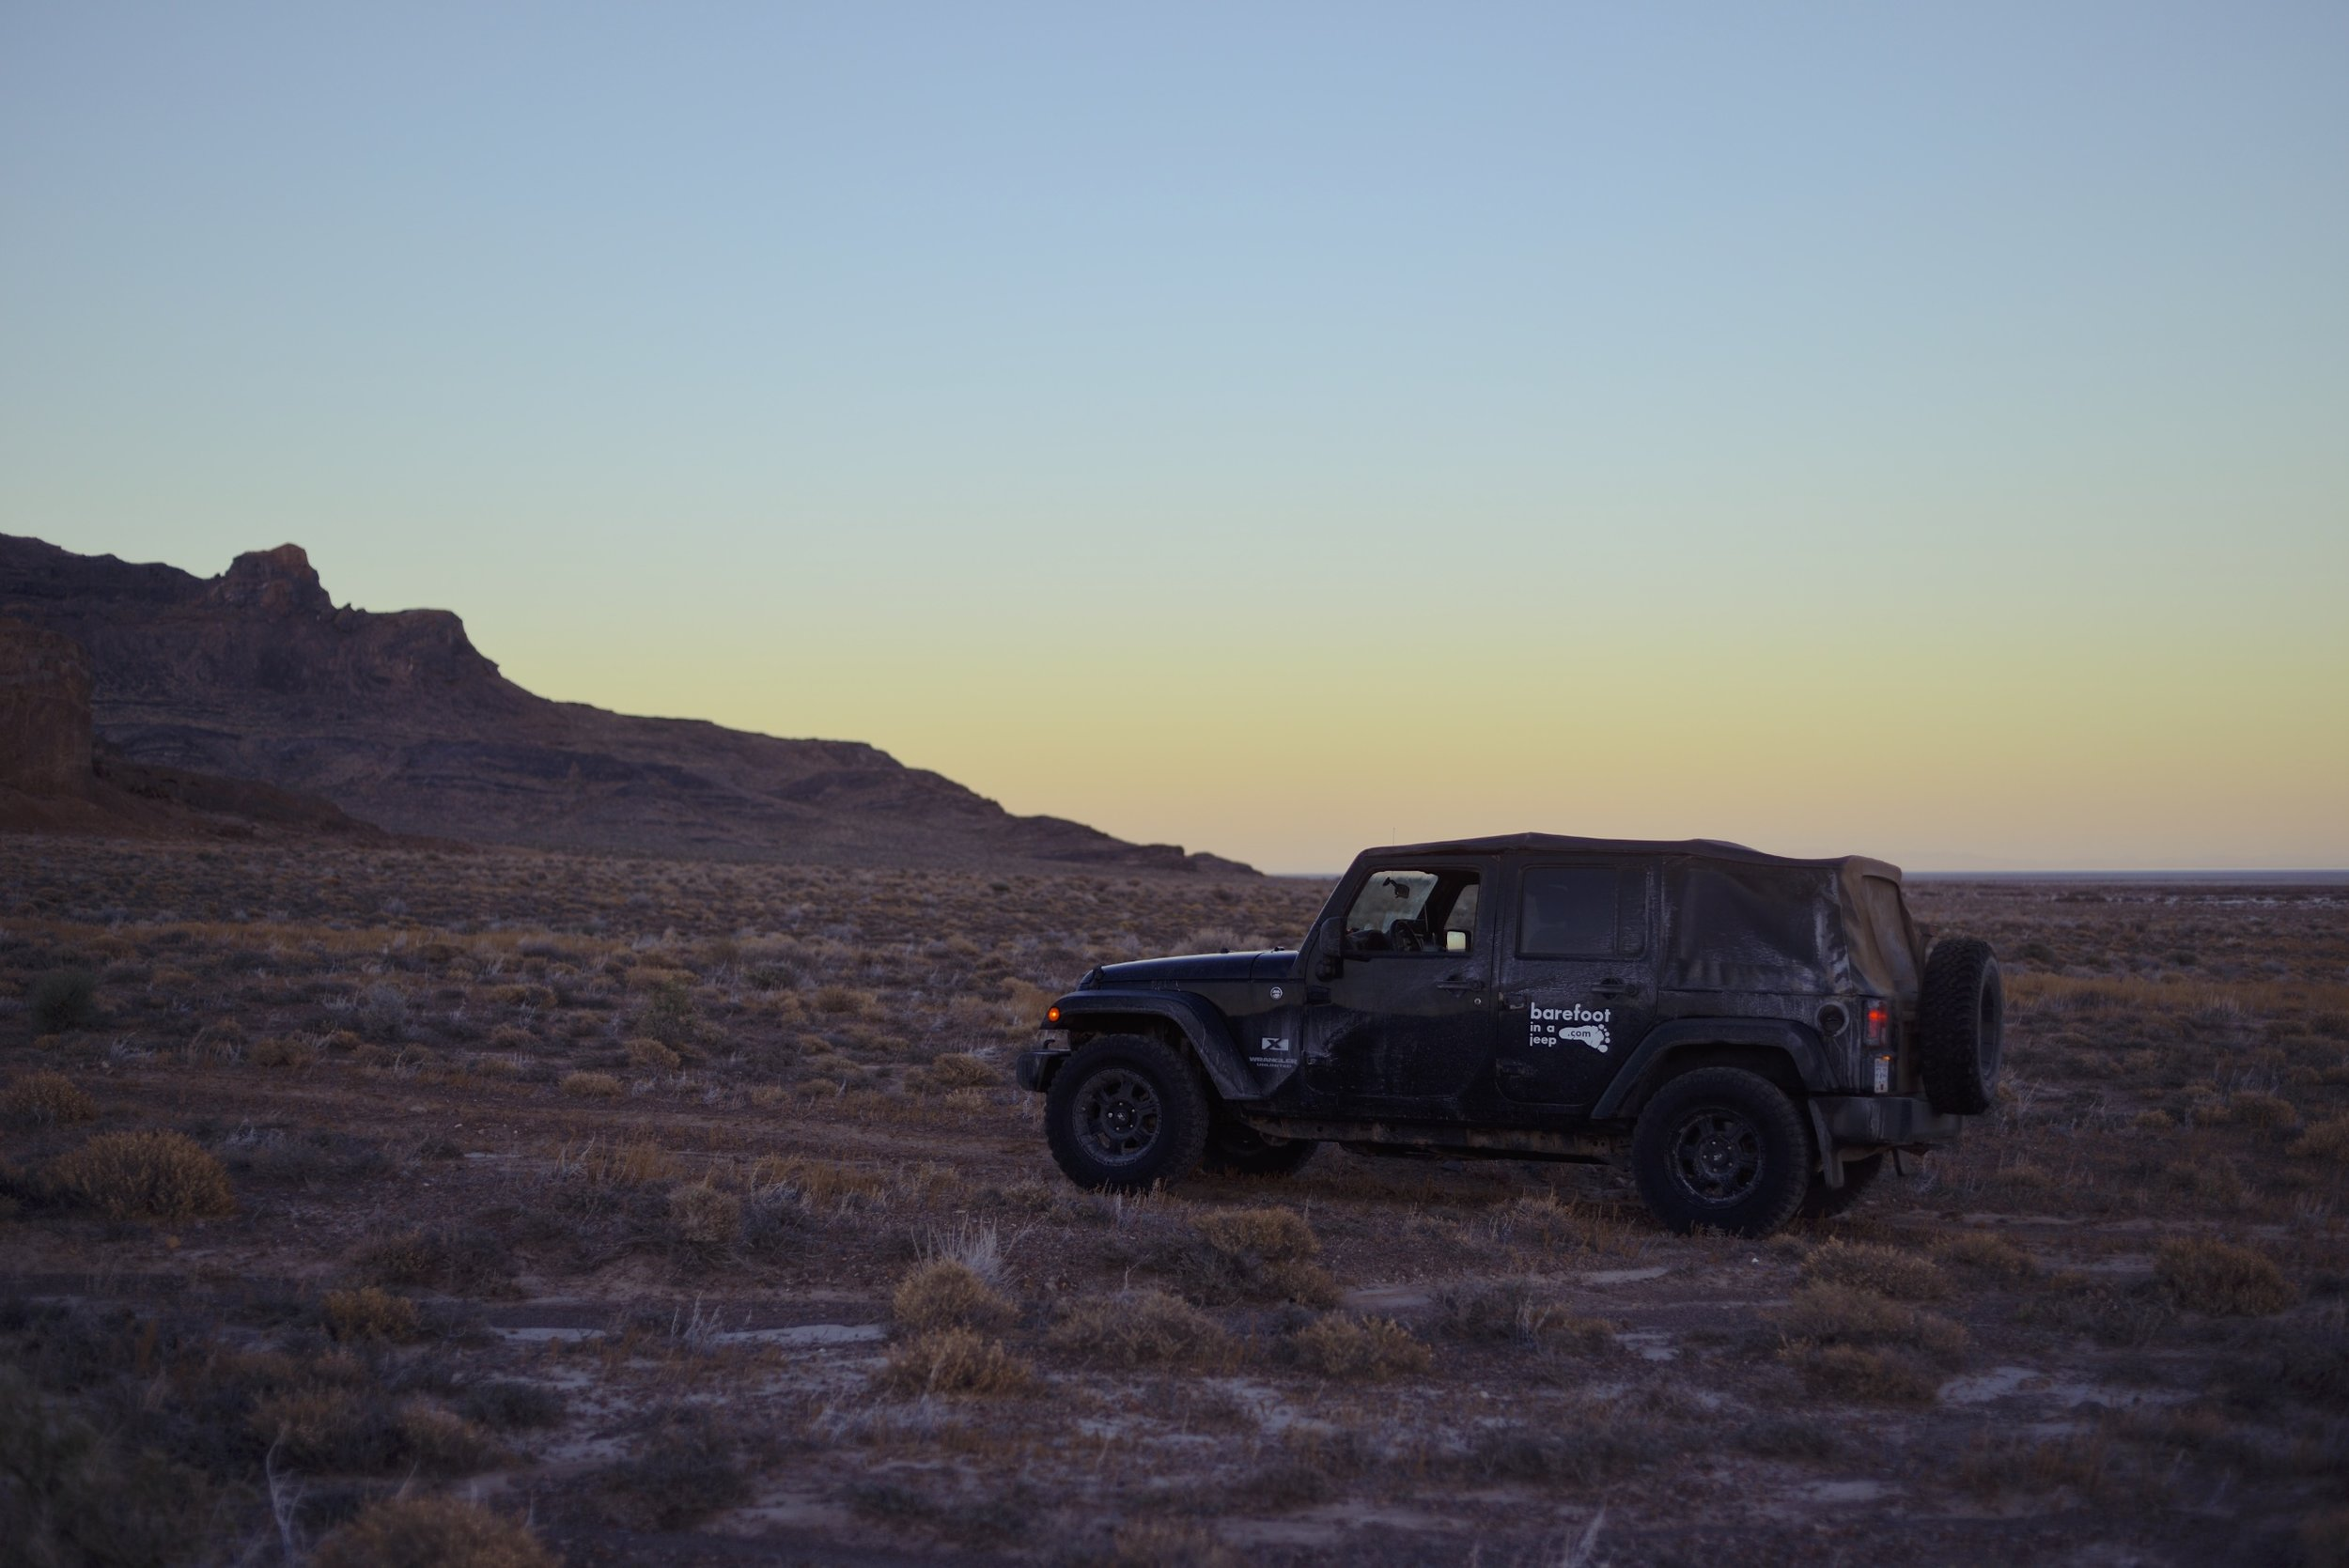 Nevada, USA. Finding a good campground for the night.